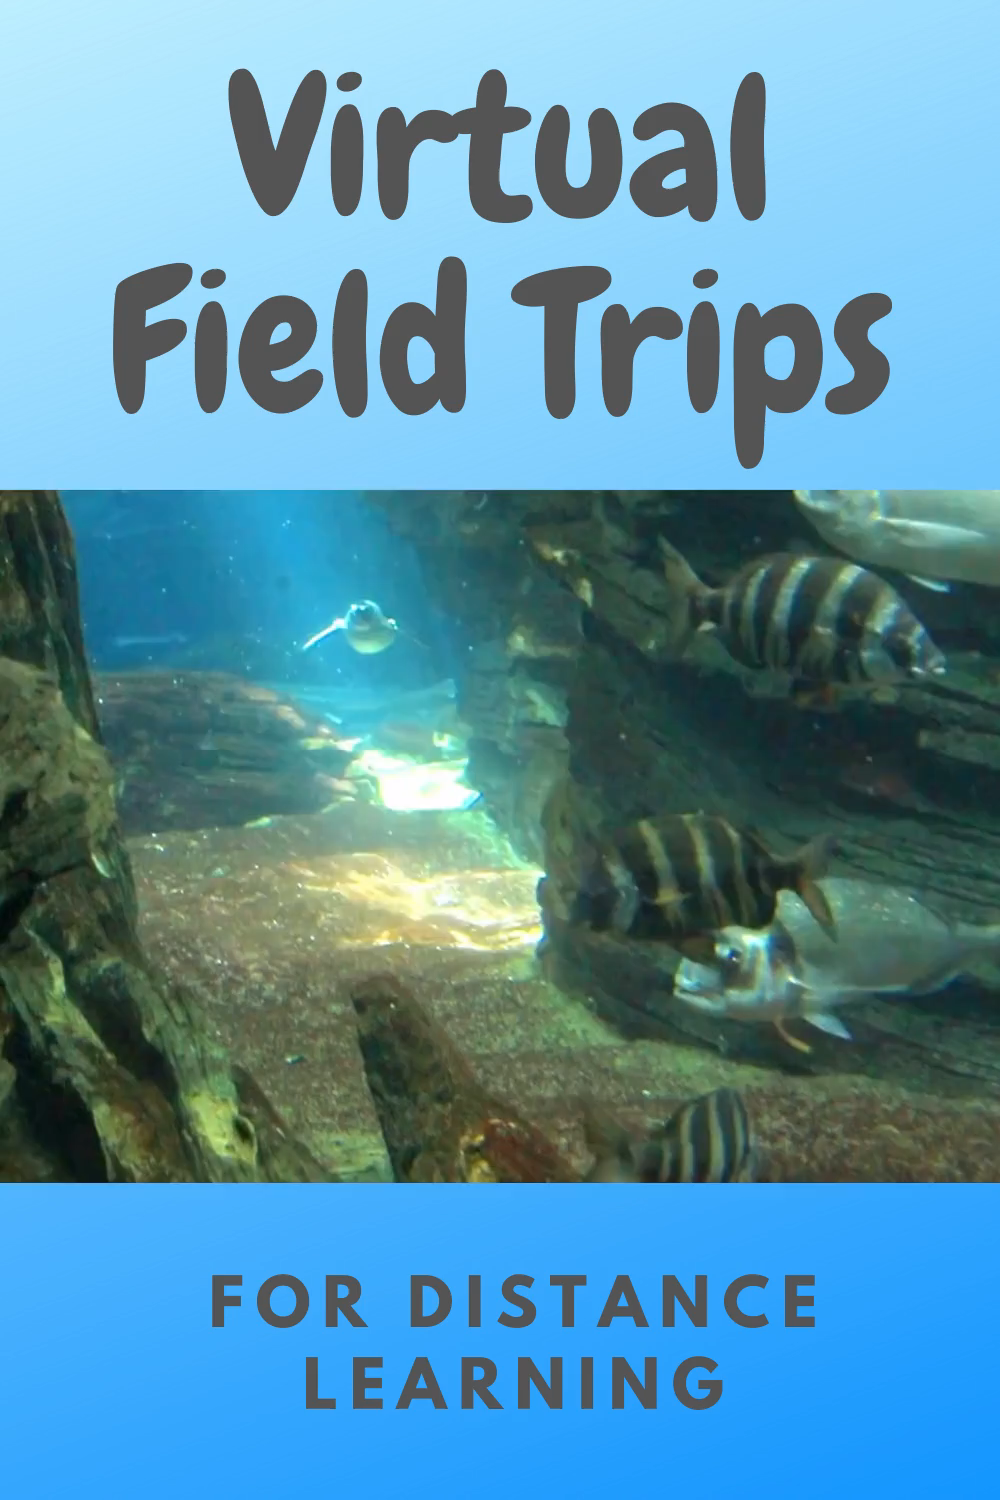 Make the best of distance learning by taking your students on a virtual field trip. 18 great ideas.